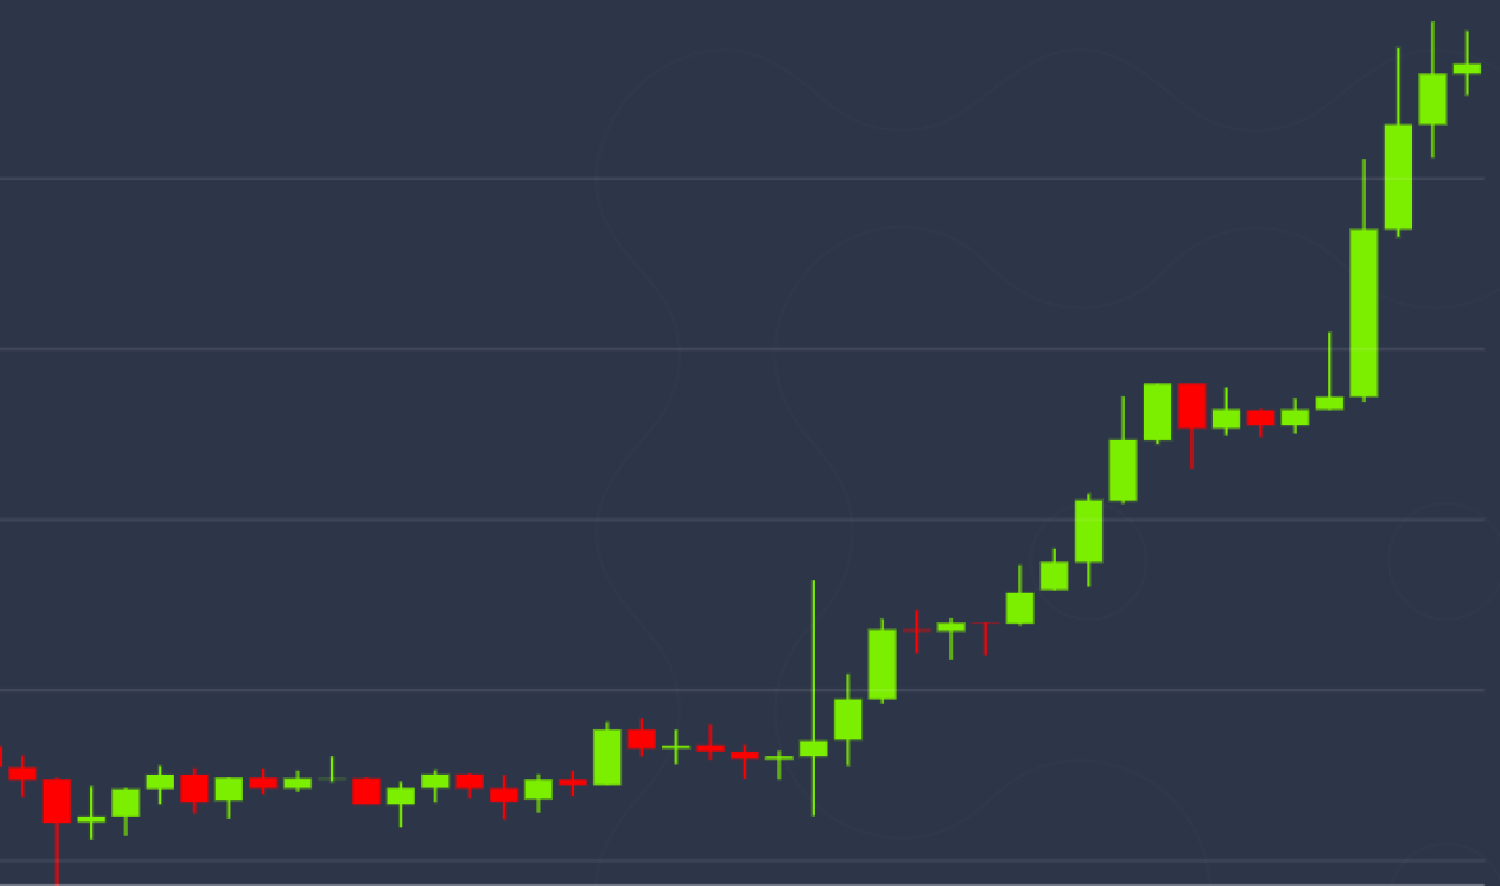 Live stock, index, futures, Forex and Bitcoin charts on TradingView, Xbt usd tradingview